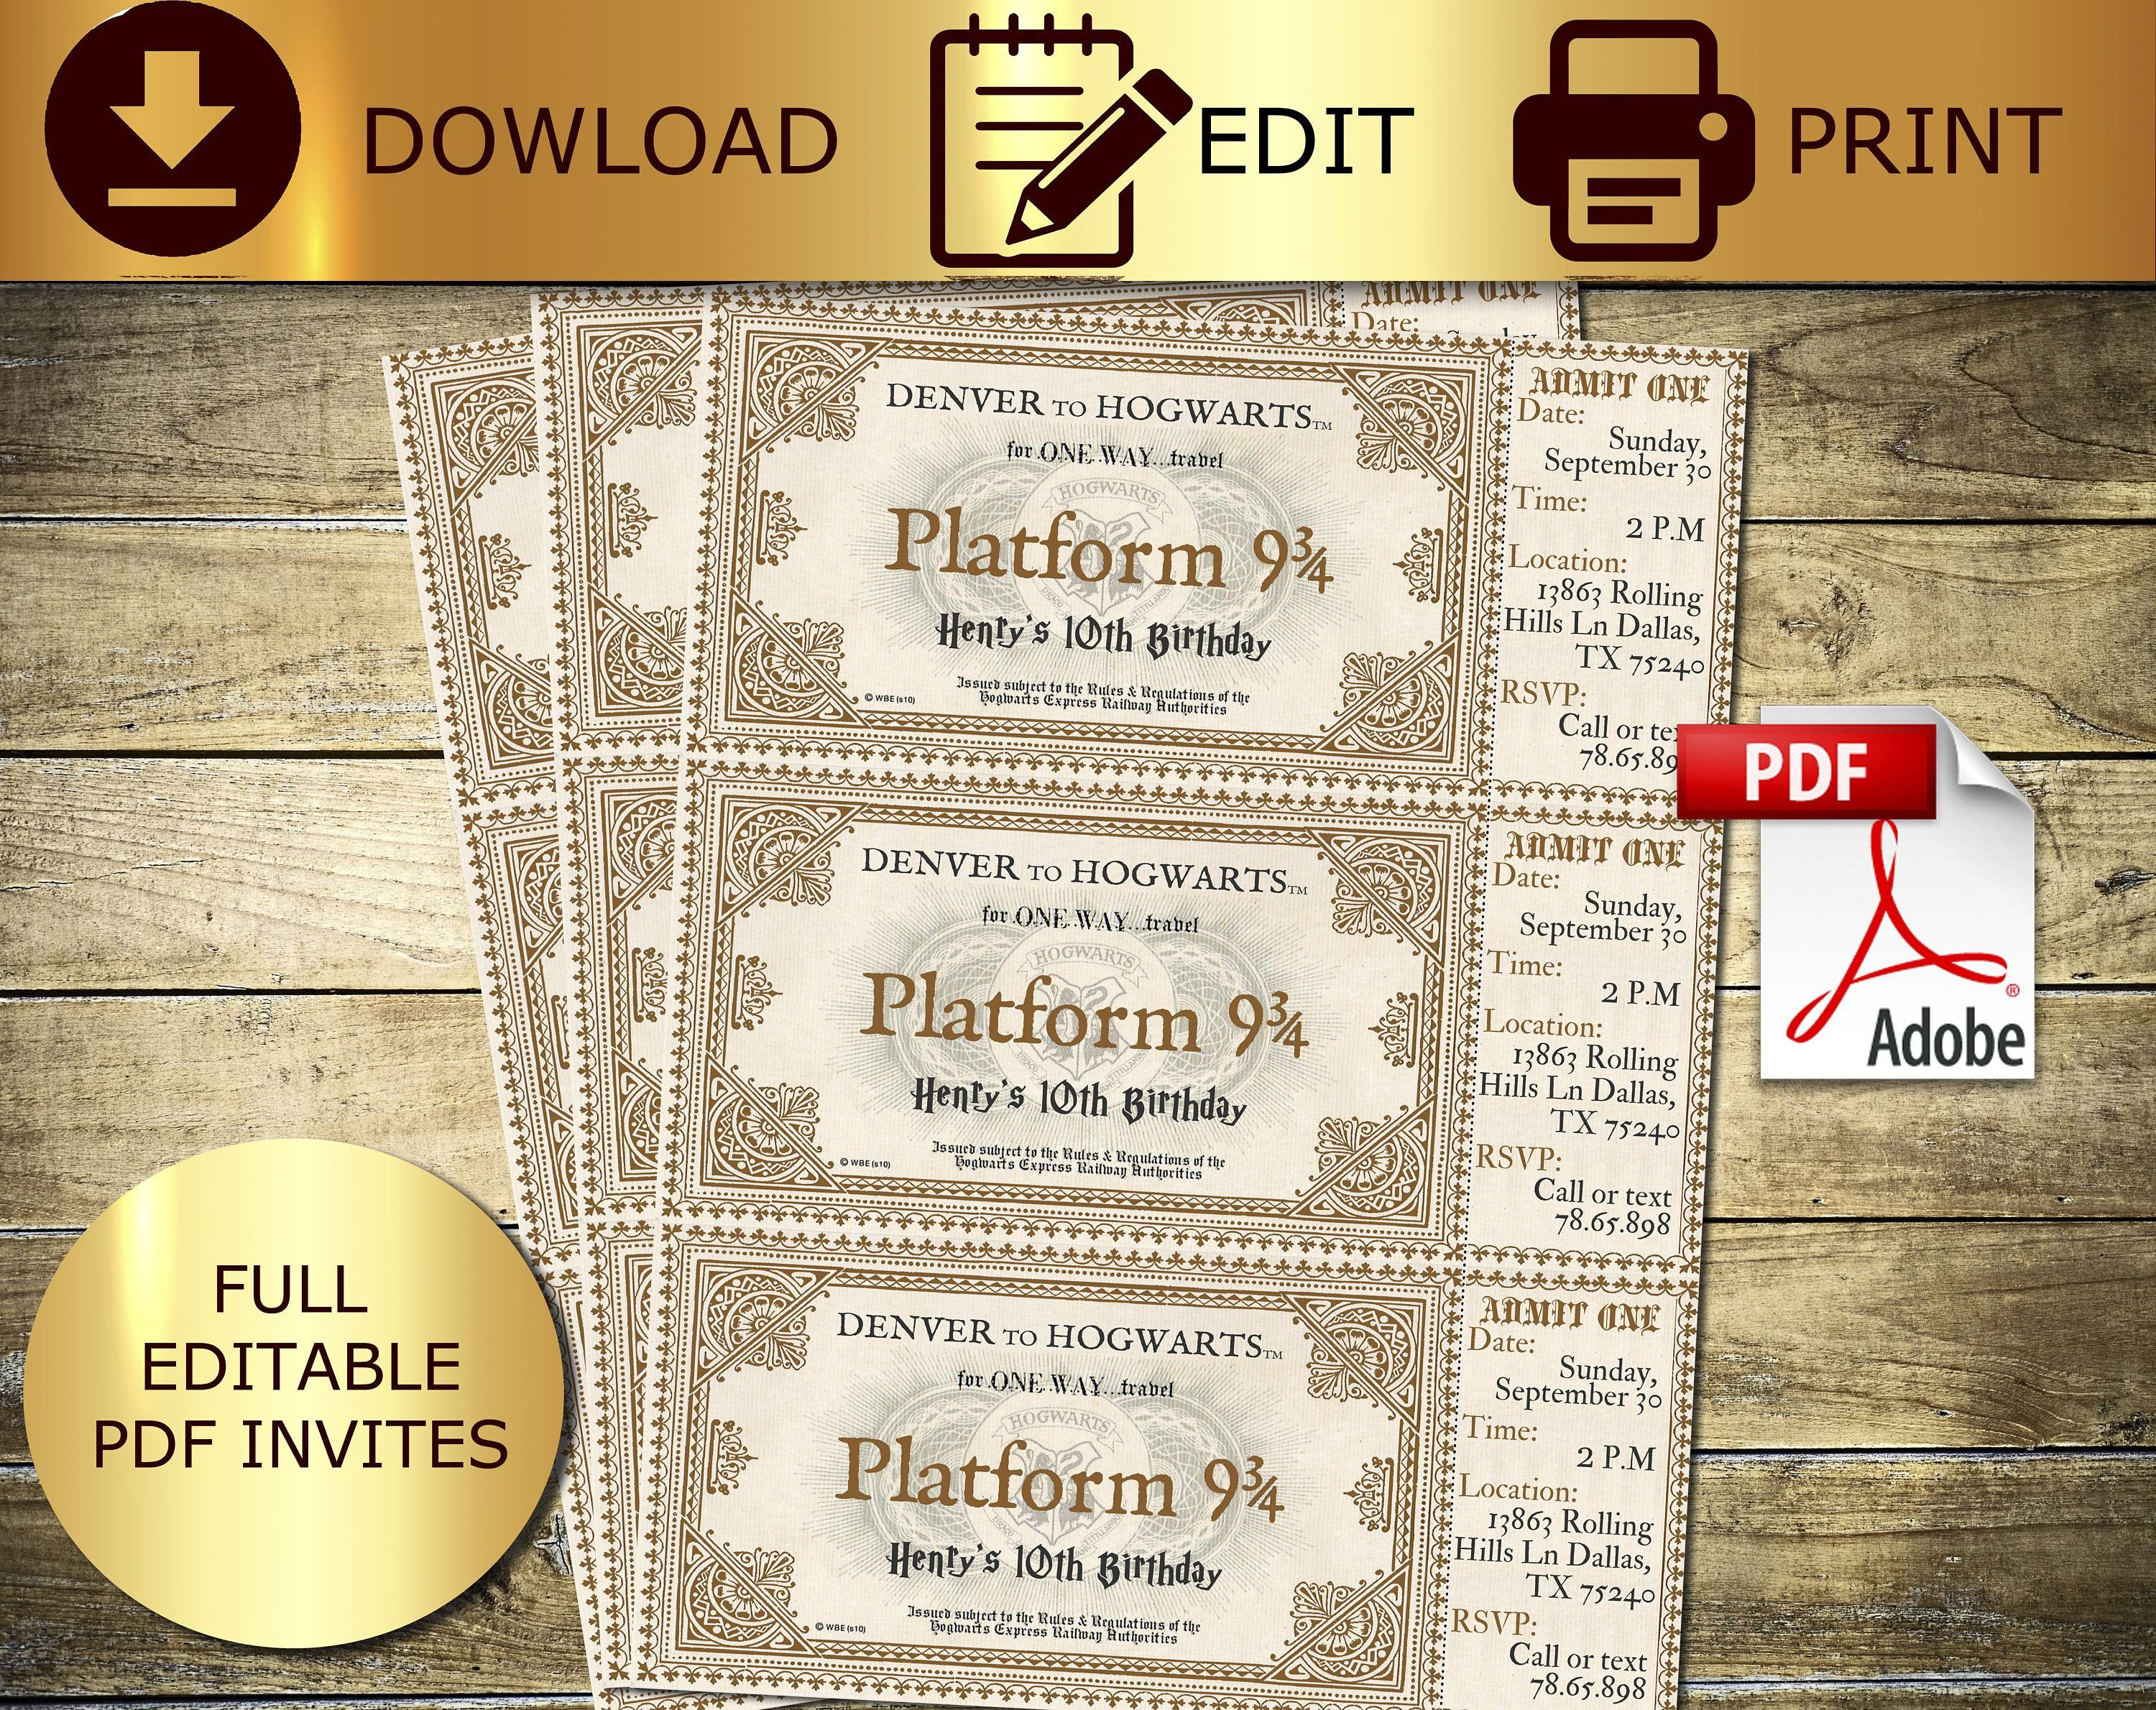 Hogwarts Express Ticket Template Editable Harry Potter Potter Ticket Hogwarts Ticket